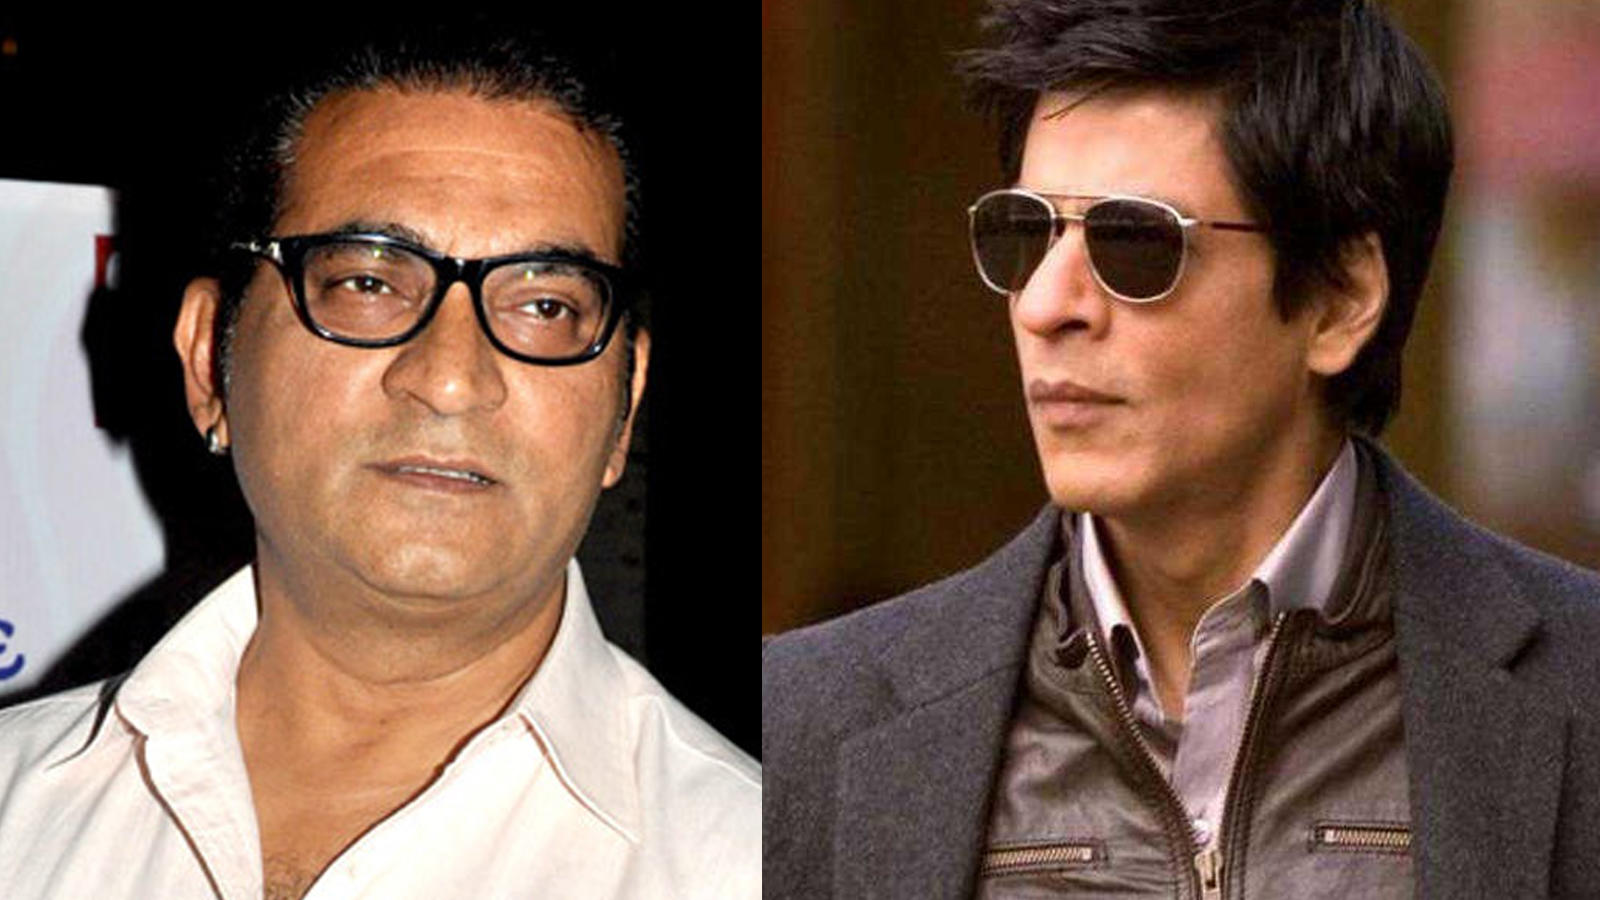 abhijeet-bhattacharya-says-i-am-not-shah-rukh-khans-voice-as-he-opens-up-on-his-rift-with-srk